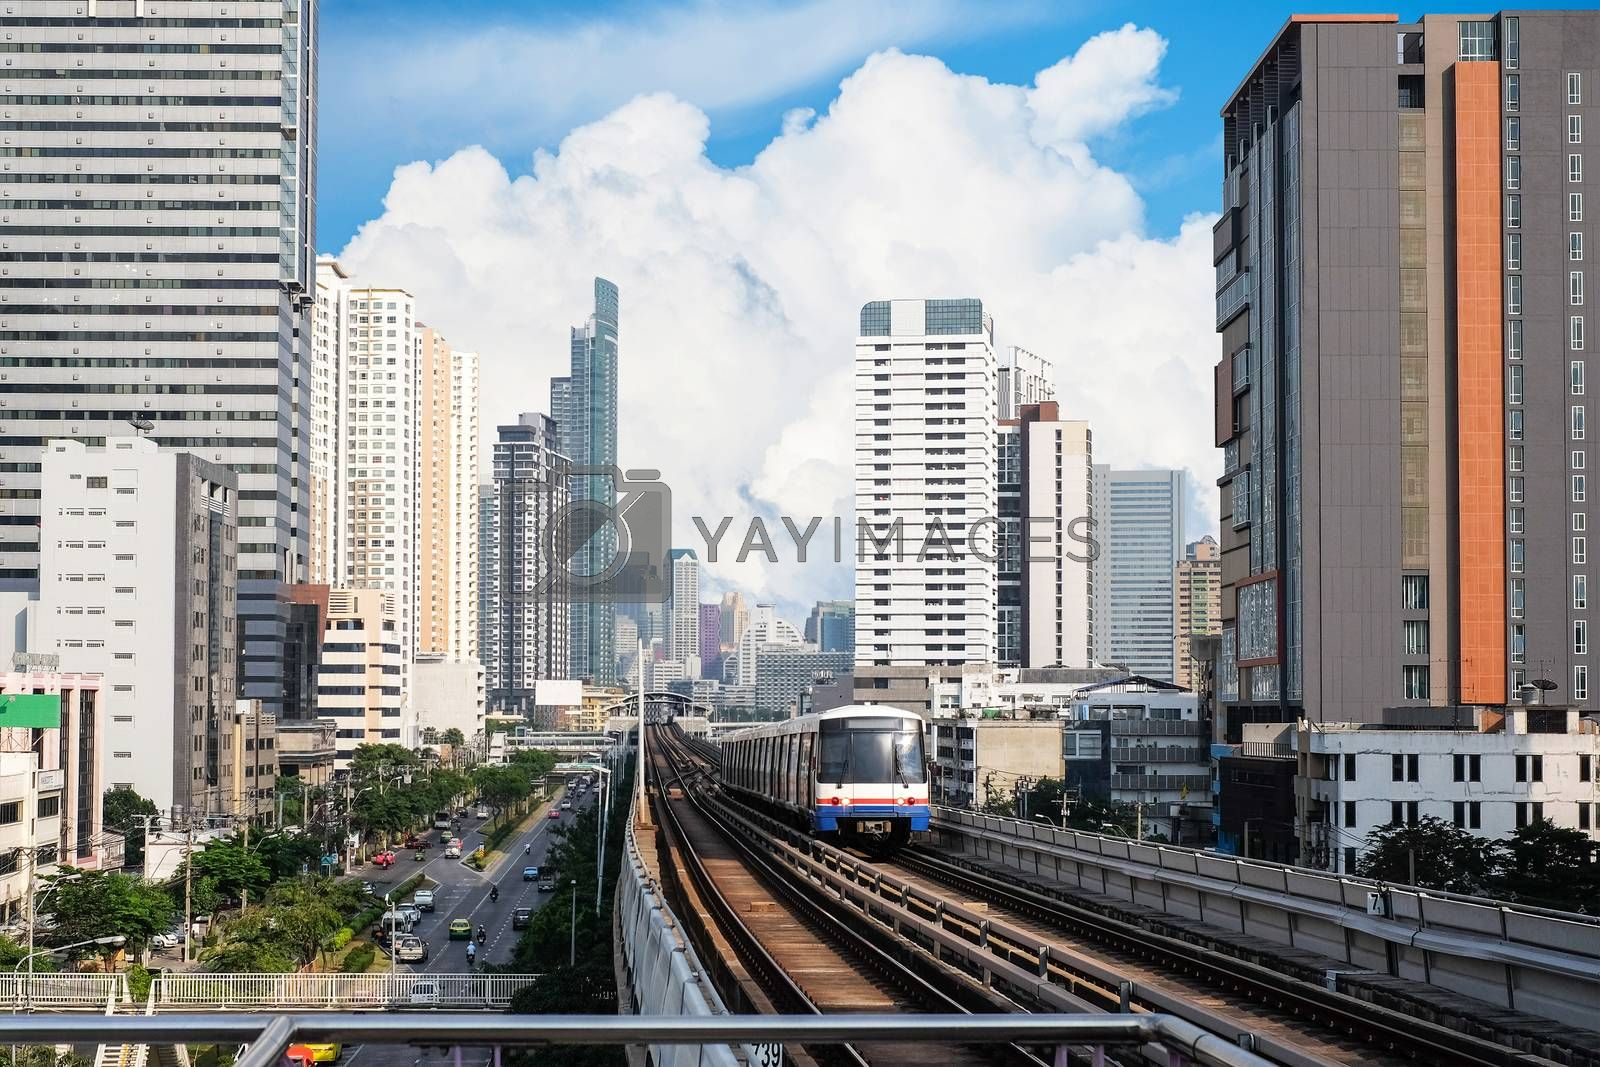 Sky Train at bangkok,thailand